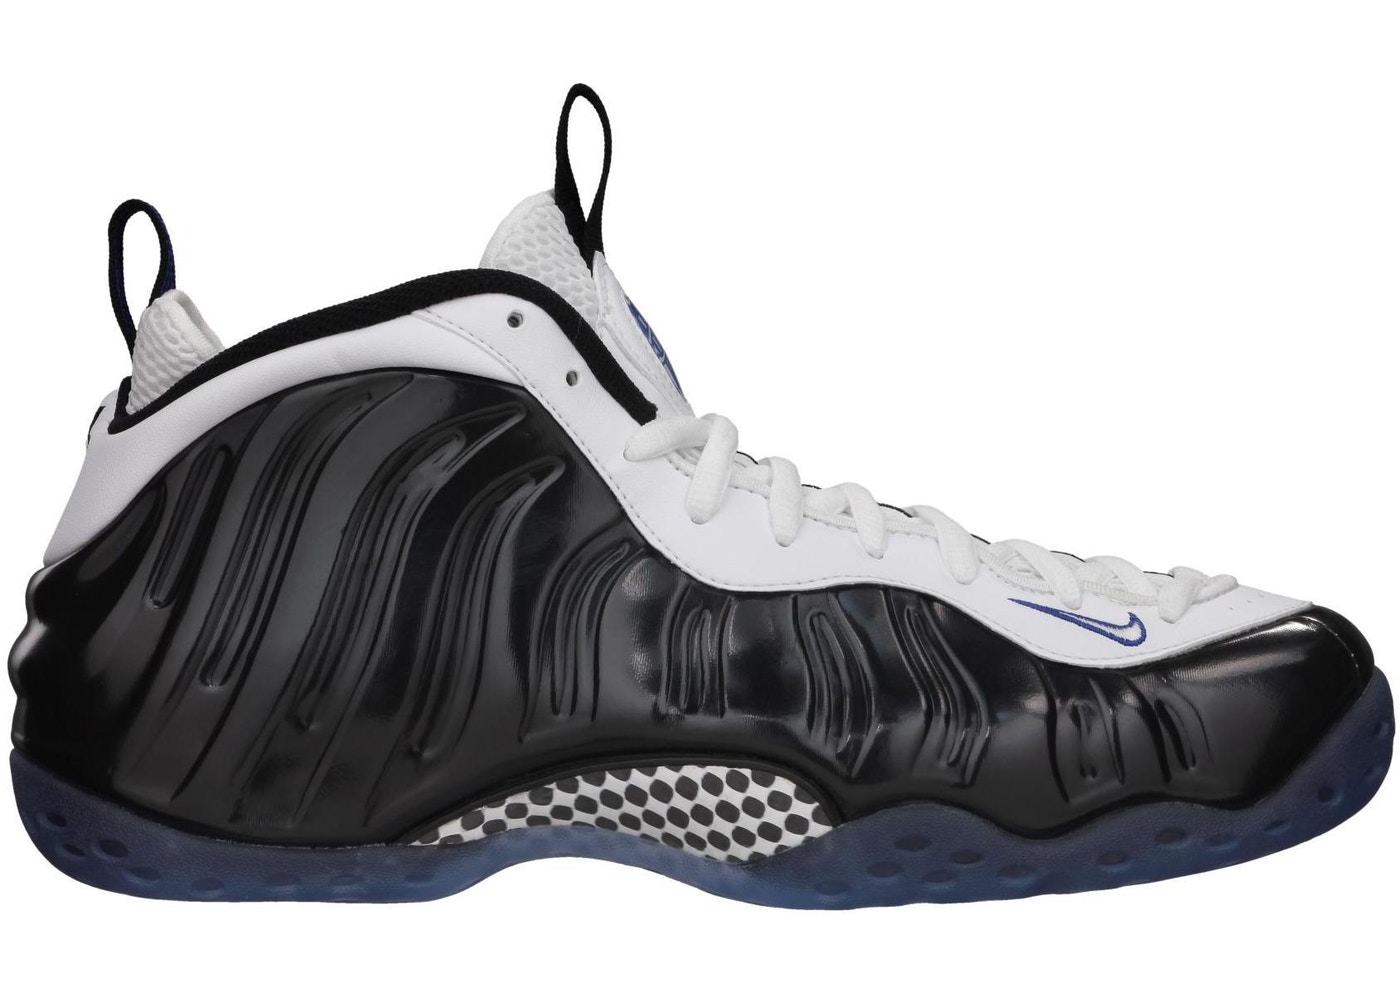 quality design 5fb5a f5c65 Air Foamposite One Concord